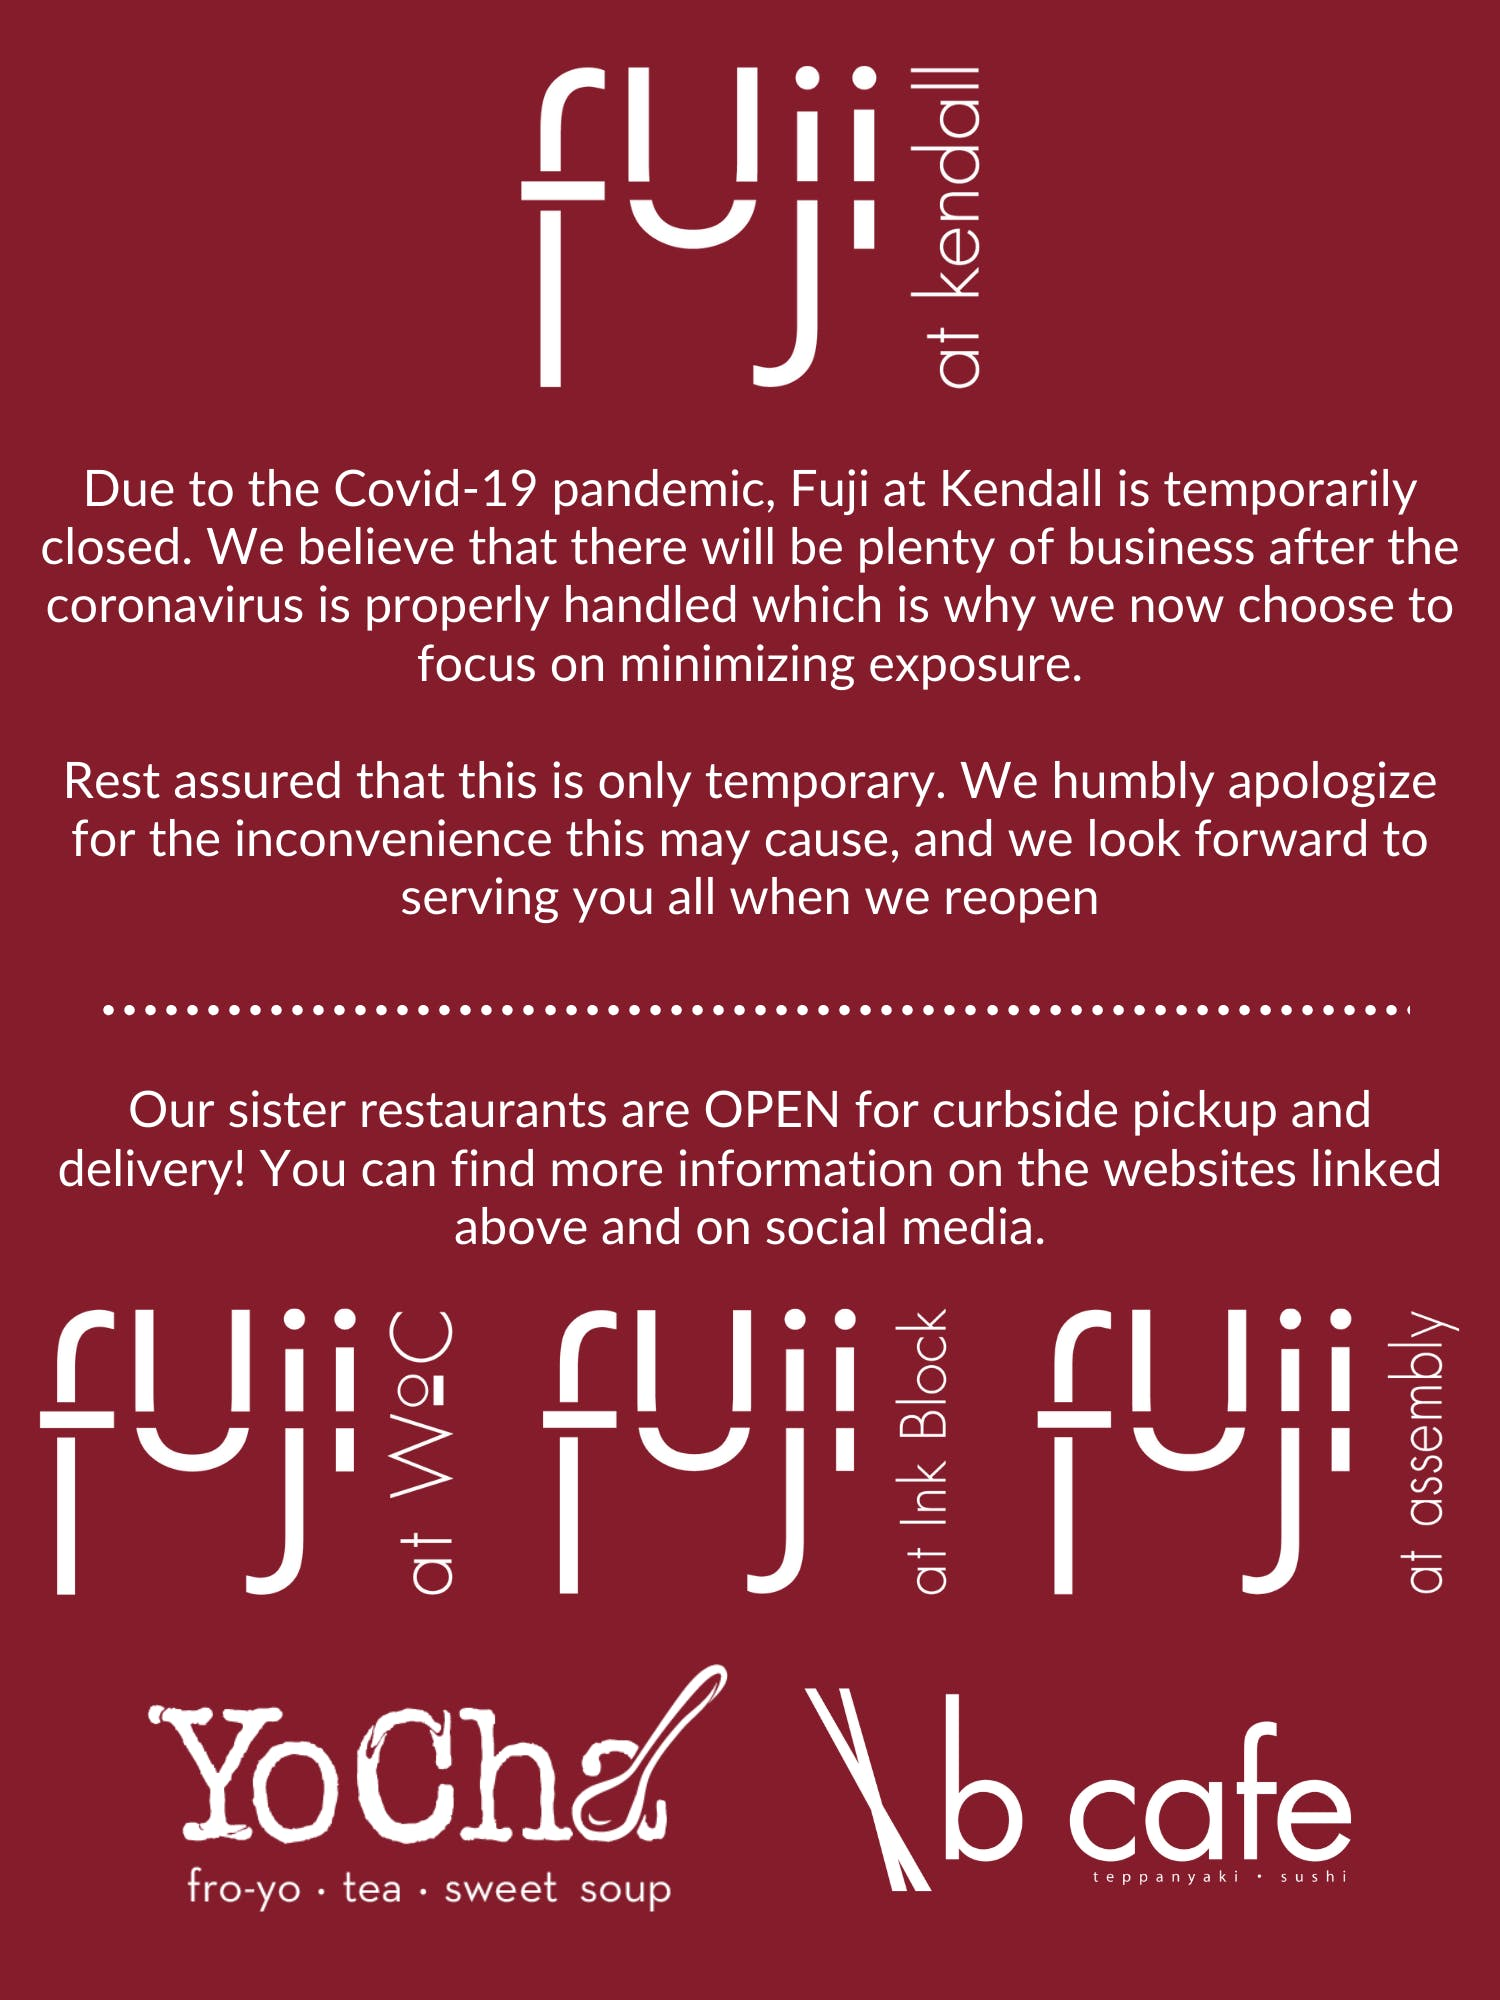 Fuji at Kendall is currently closed due to the Covid-19 pandemic. Please check out our sister restaurants Fuji at WoC, Fuij at Ink Block, Fuji at Assembly, B Cafe, and YoCha!